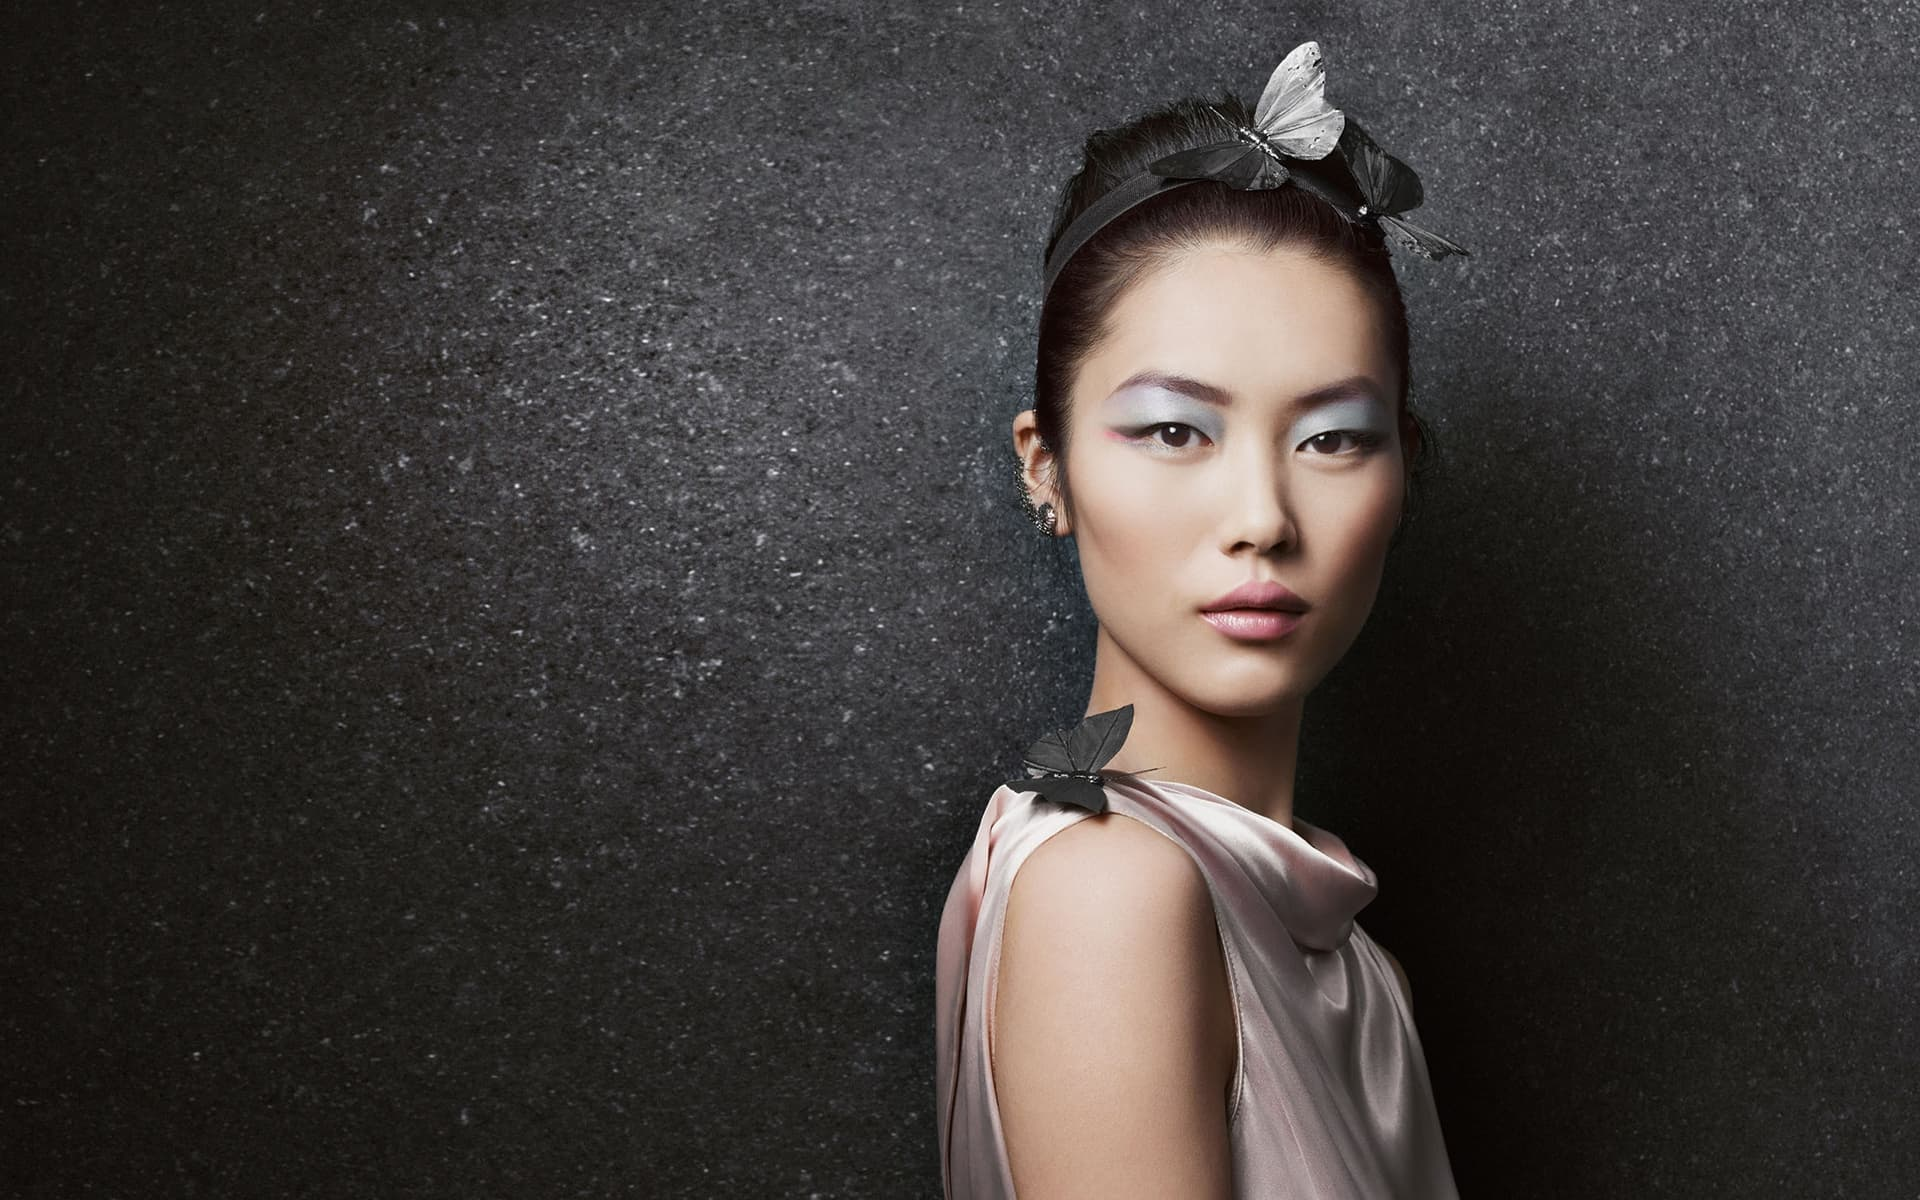 Liu Wen amazing 1920x1080 wallpaper